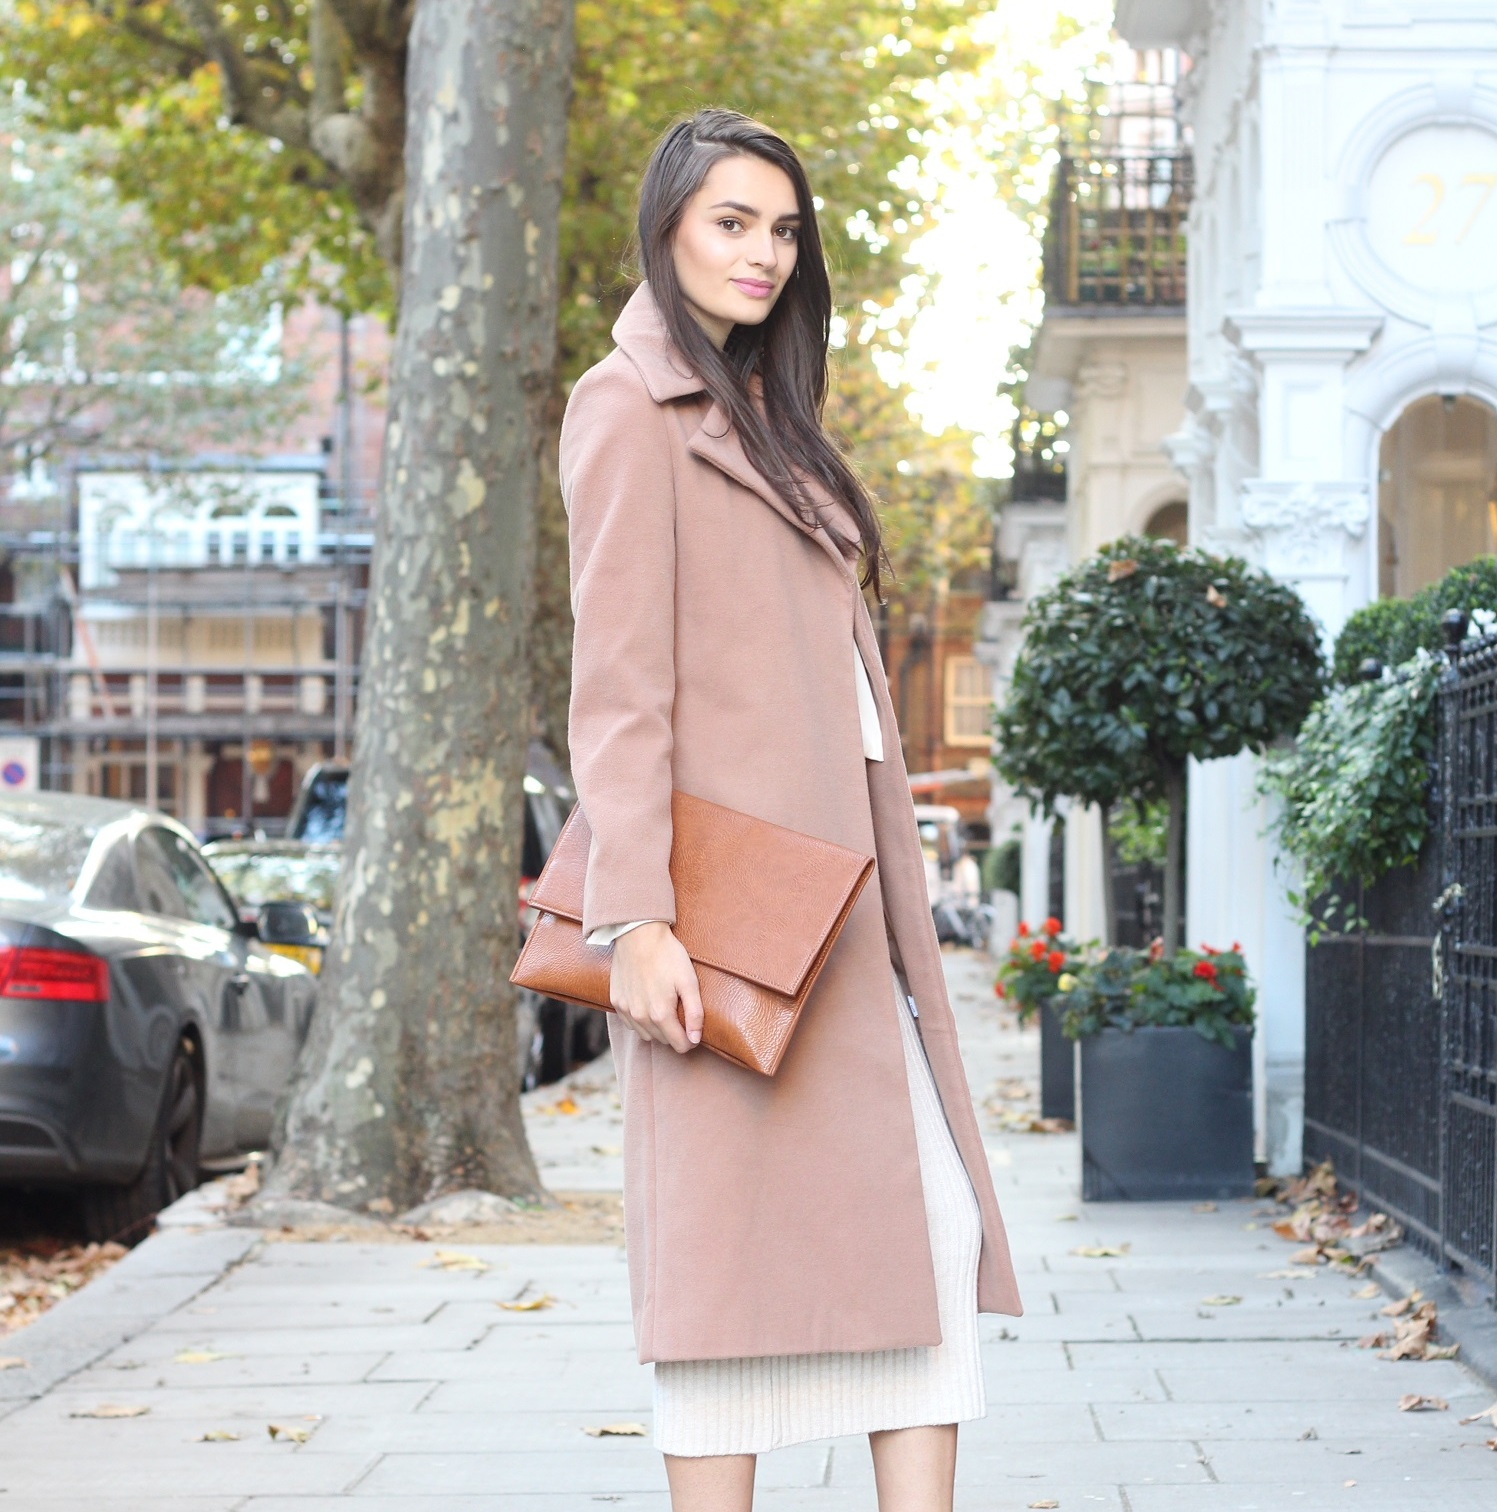 peexo fashion blogger layering autumn neutrals